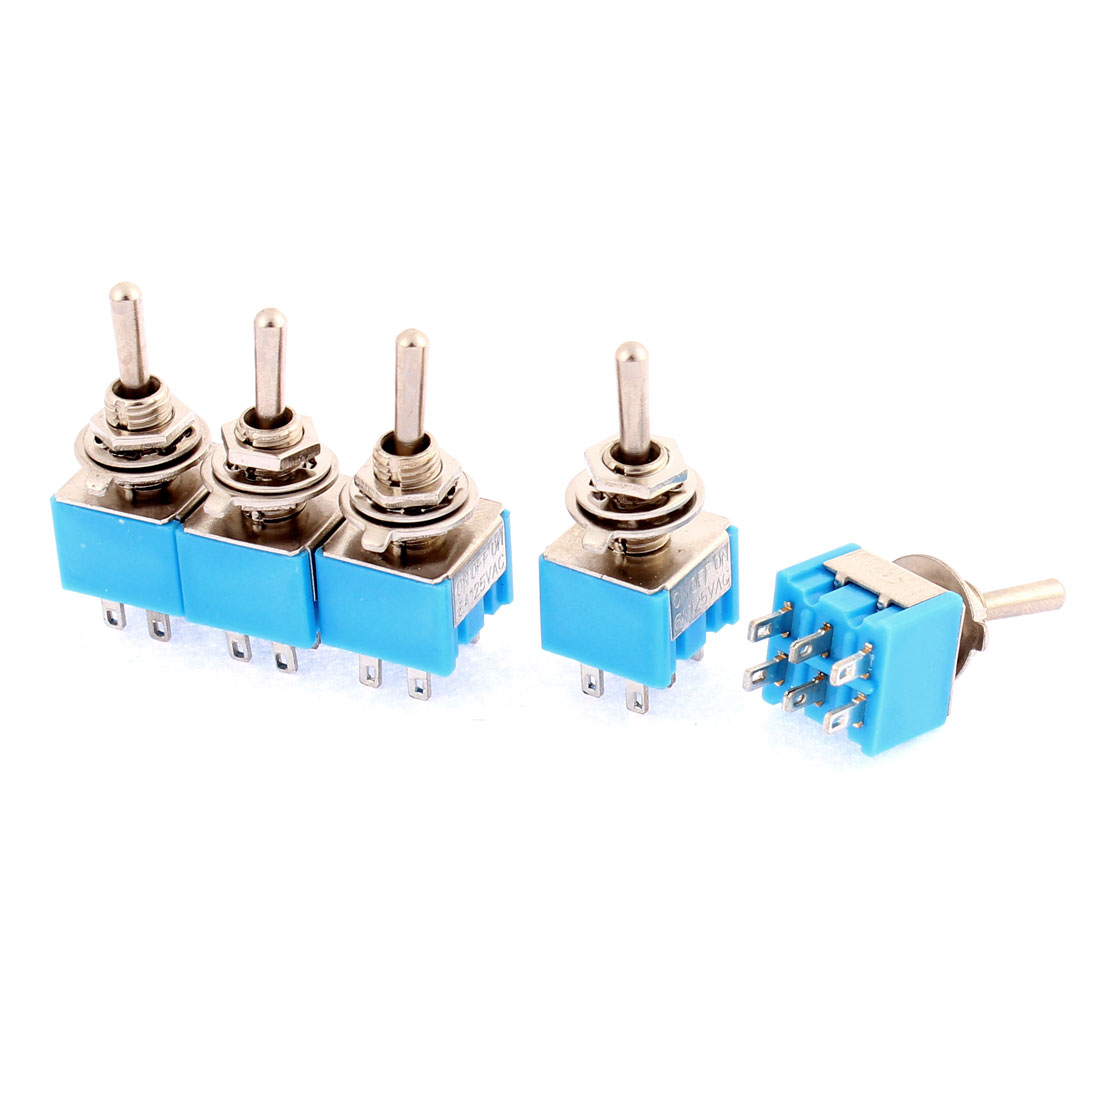 AC125V 6A 6 Terminals 3 Position On/Off/On DPDT Toggle Switch 5Pcs